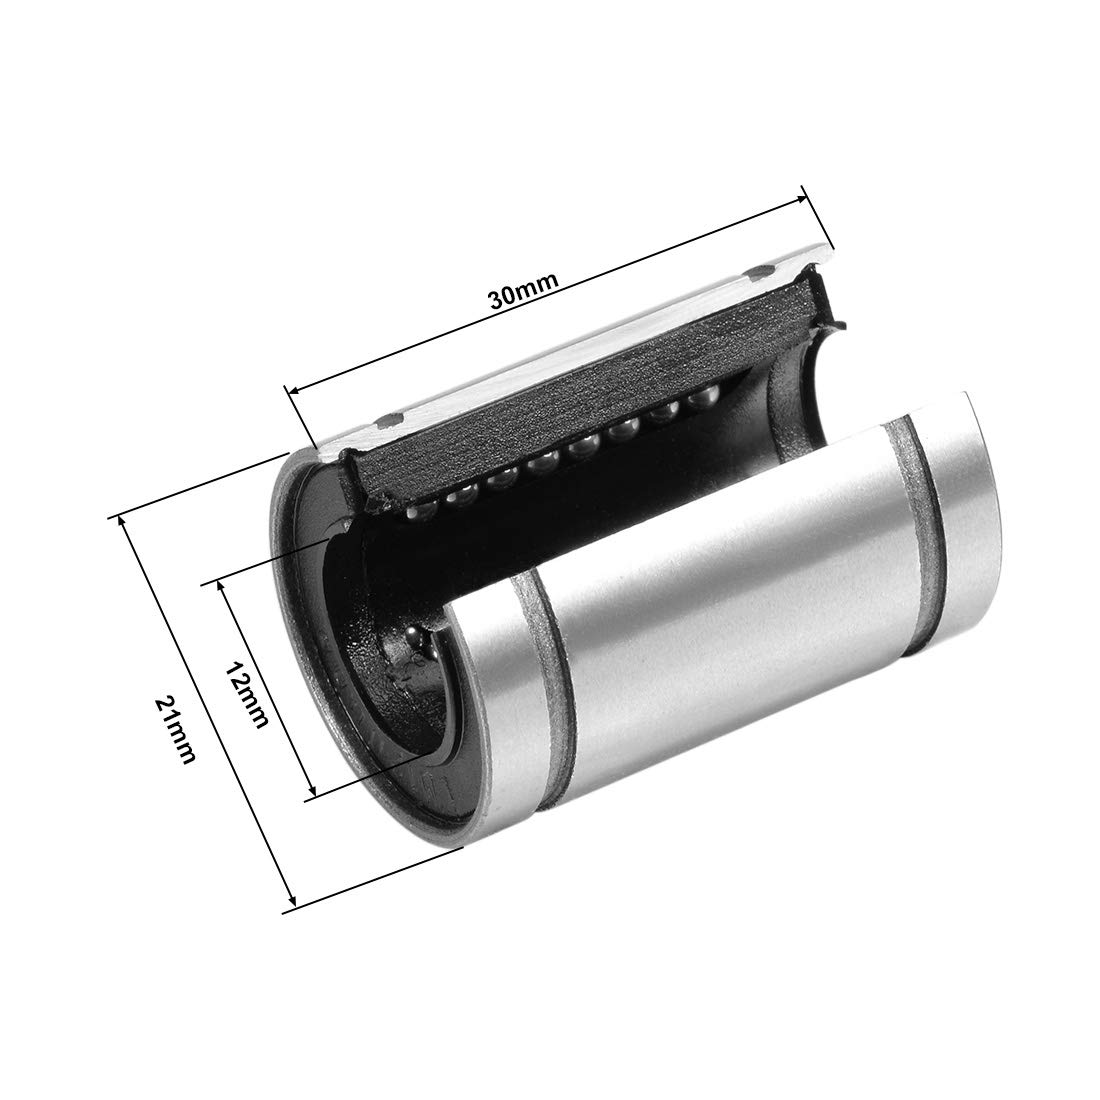 Pack of 4 uxcell LM12UUOP Linear Ball Bearings Open Type 21mm OD 12mm Bore Dia 30mm Length